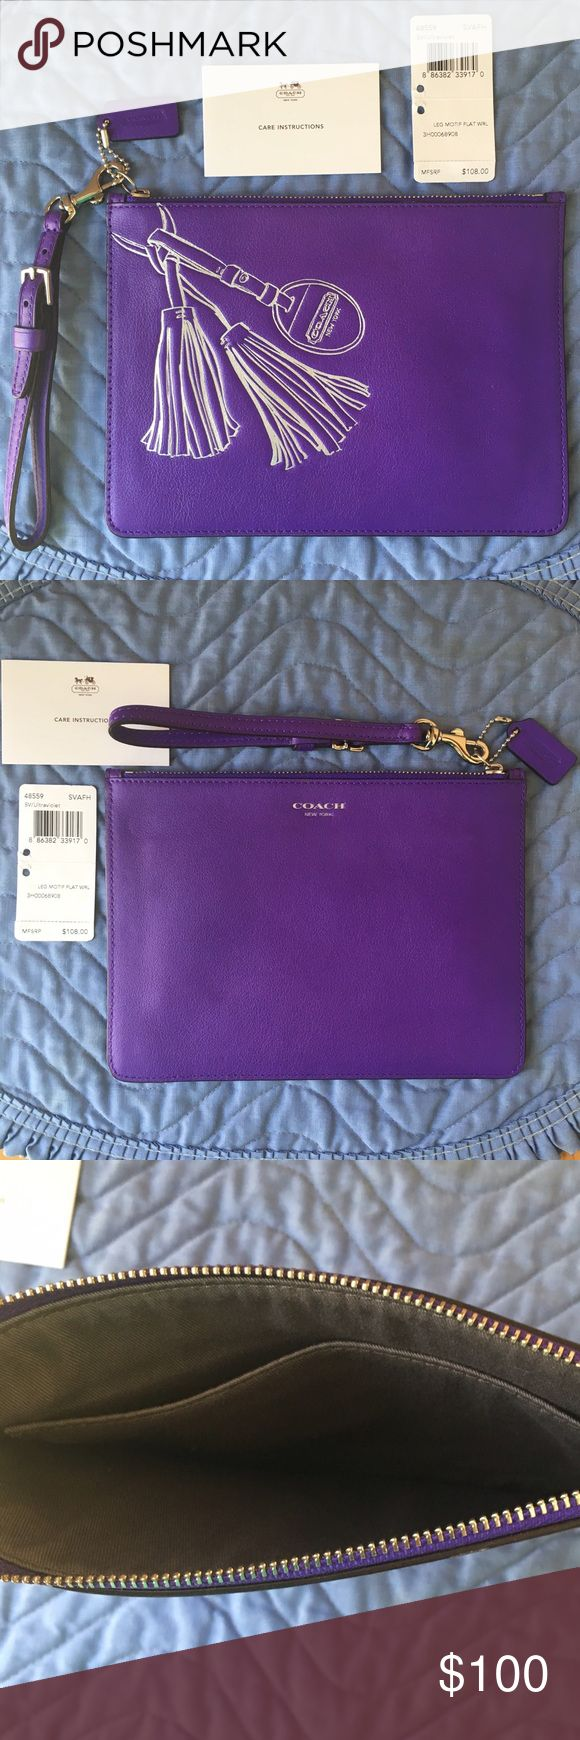 "💜 Coach Legacy Motif Flat Ultraviolet Wristlet Rare retired piece with tag & care card! Authentic Coach Legacy Motif Flat Wristlet in Silver/Ultraviolet; Style #48559, SVAFH. Dimensions: 8.25"" L x 6"" H. Features beautiful leather with embossed Trompe L'oeil motif; fabric interior with large slip pocket; zip-top closure; detachable strap with clip to form a wrist strap or attach to a bag; and mini Coach hangtag. 💜 Coach Bags Clutches & Wristlets"